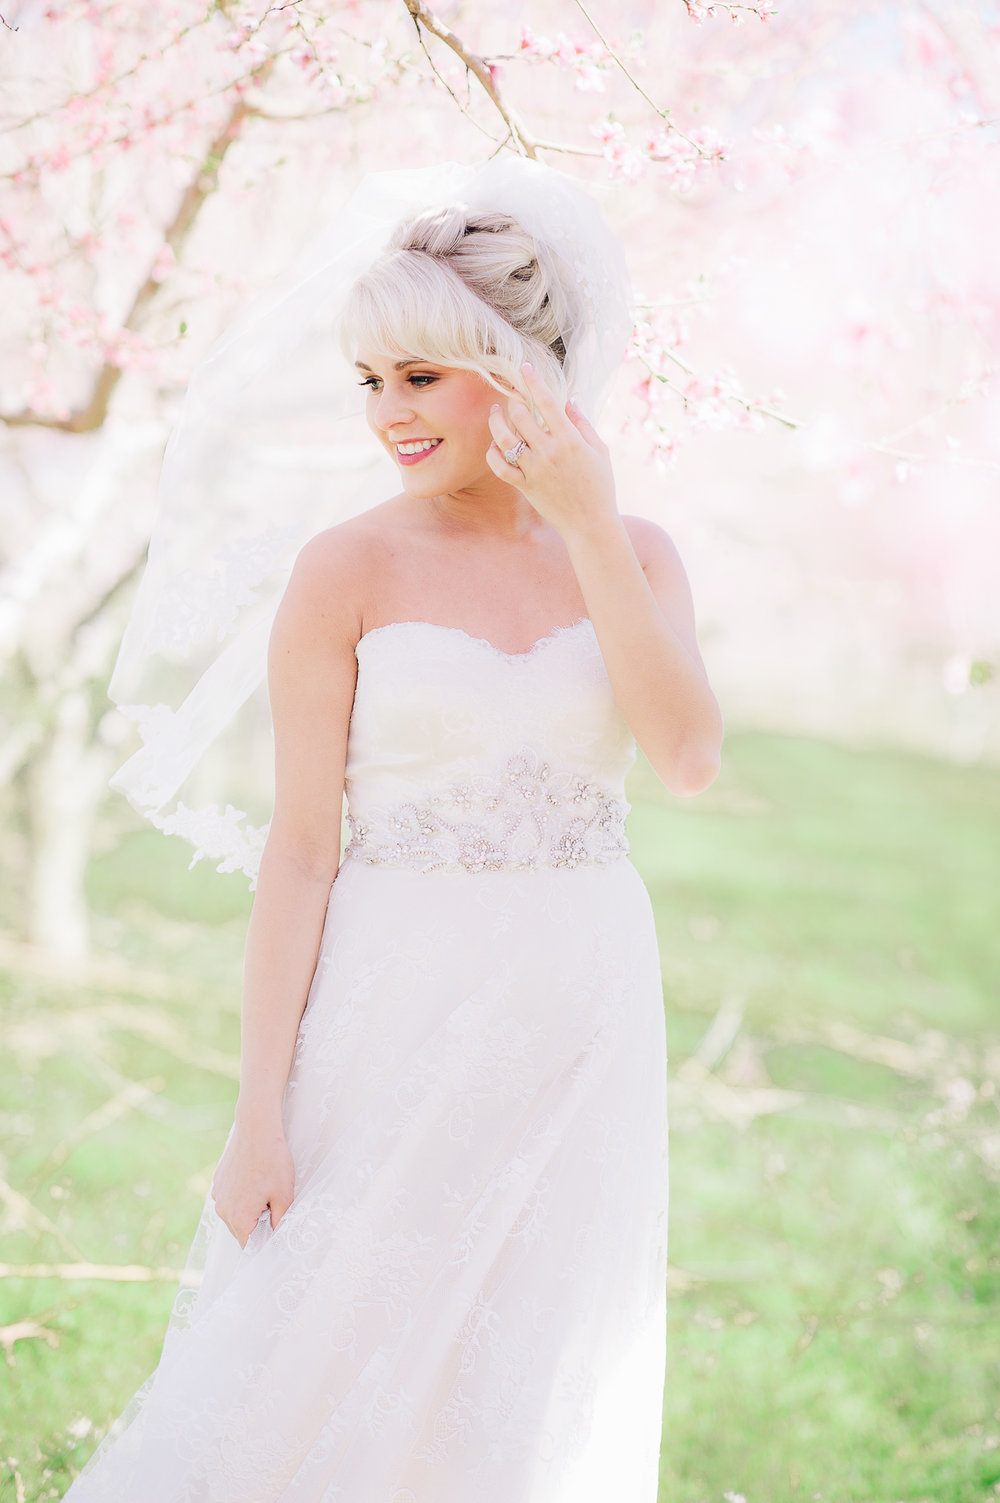 youseephotography_virginia_styledshoot_springwedding_blossoms  (11).jpg